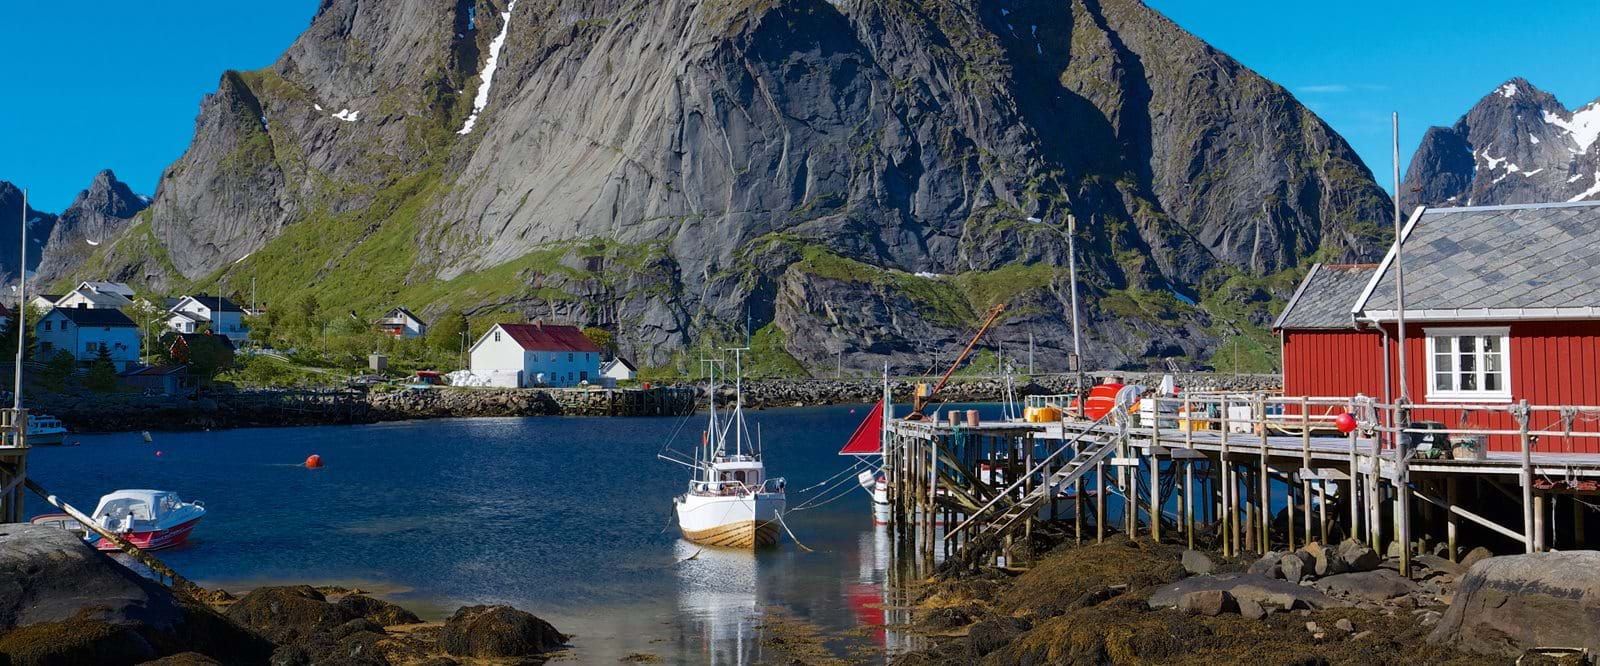 Fishing village, Lofoten